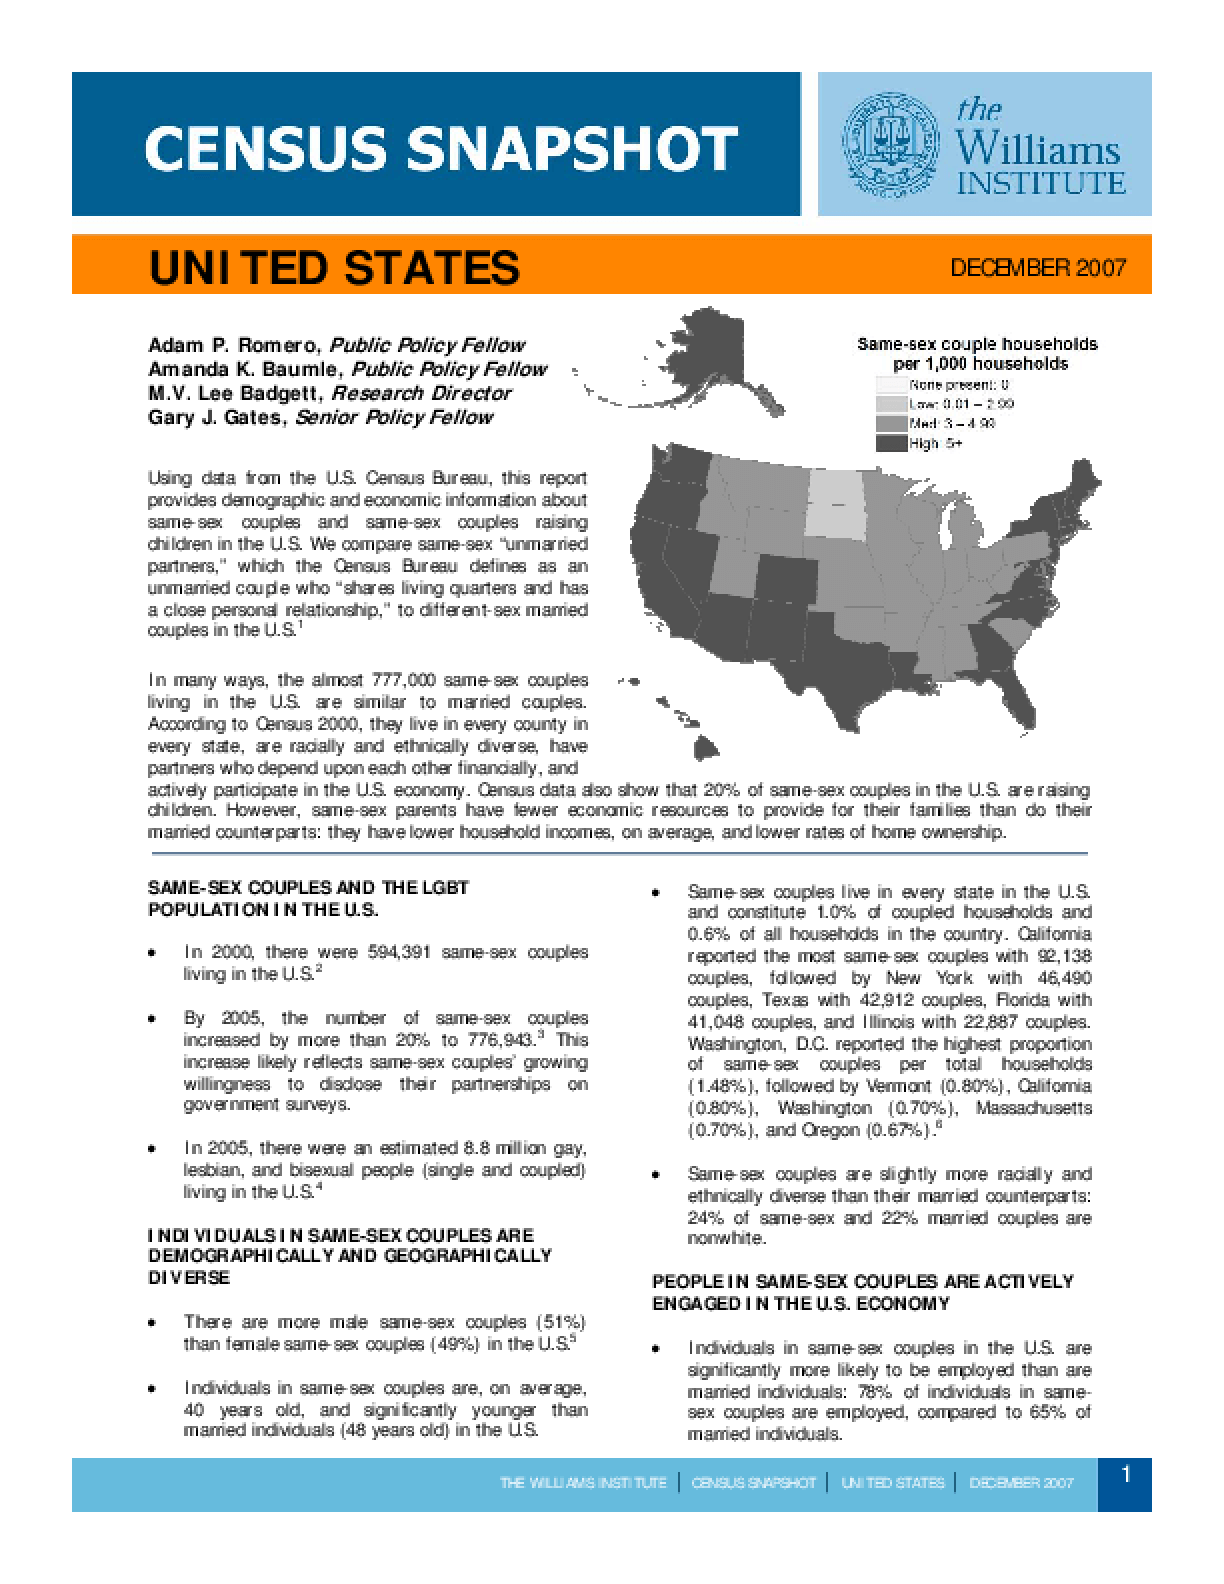 Census Snapshot: United States